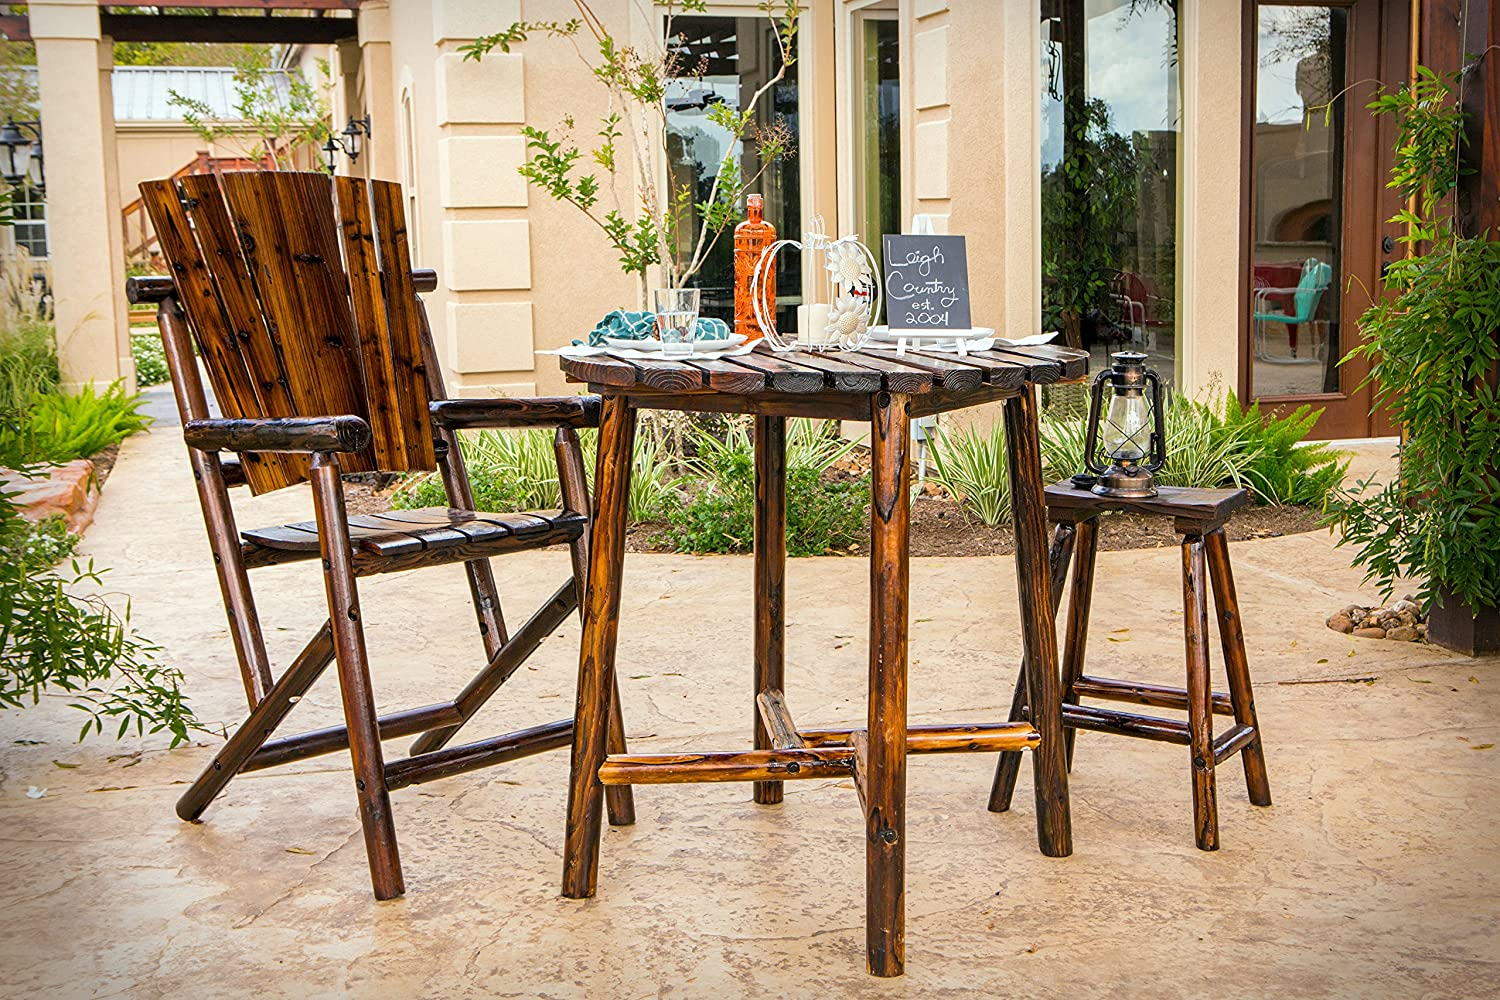 Christopher Knight Home 302811 Dominica Outdoor Bar Set, Multibrown